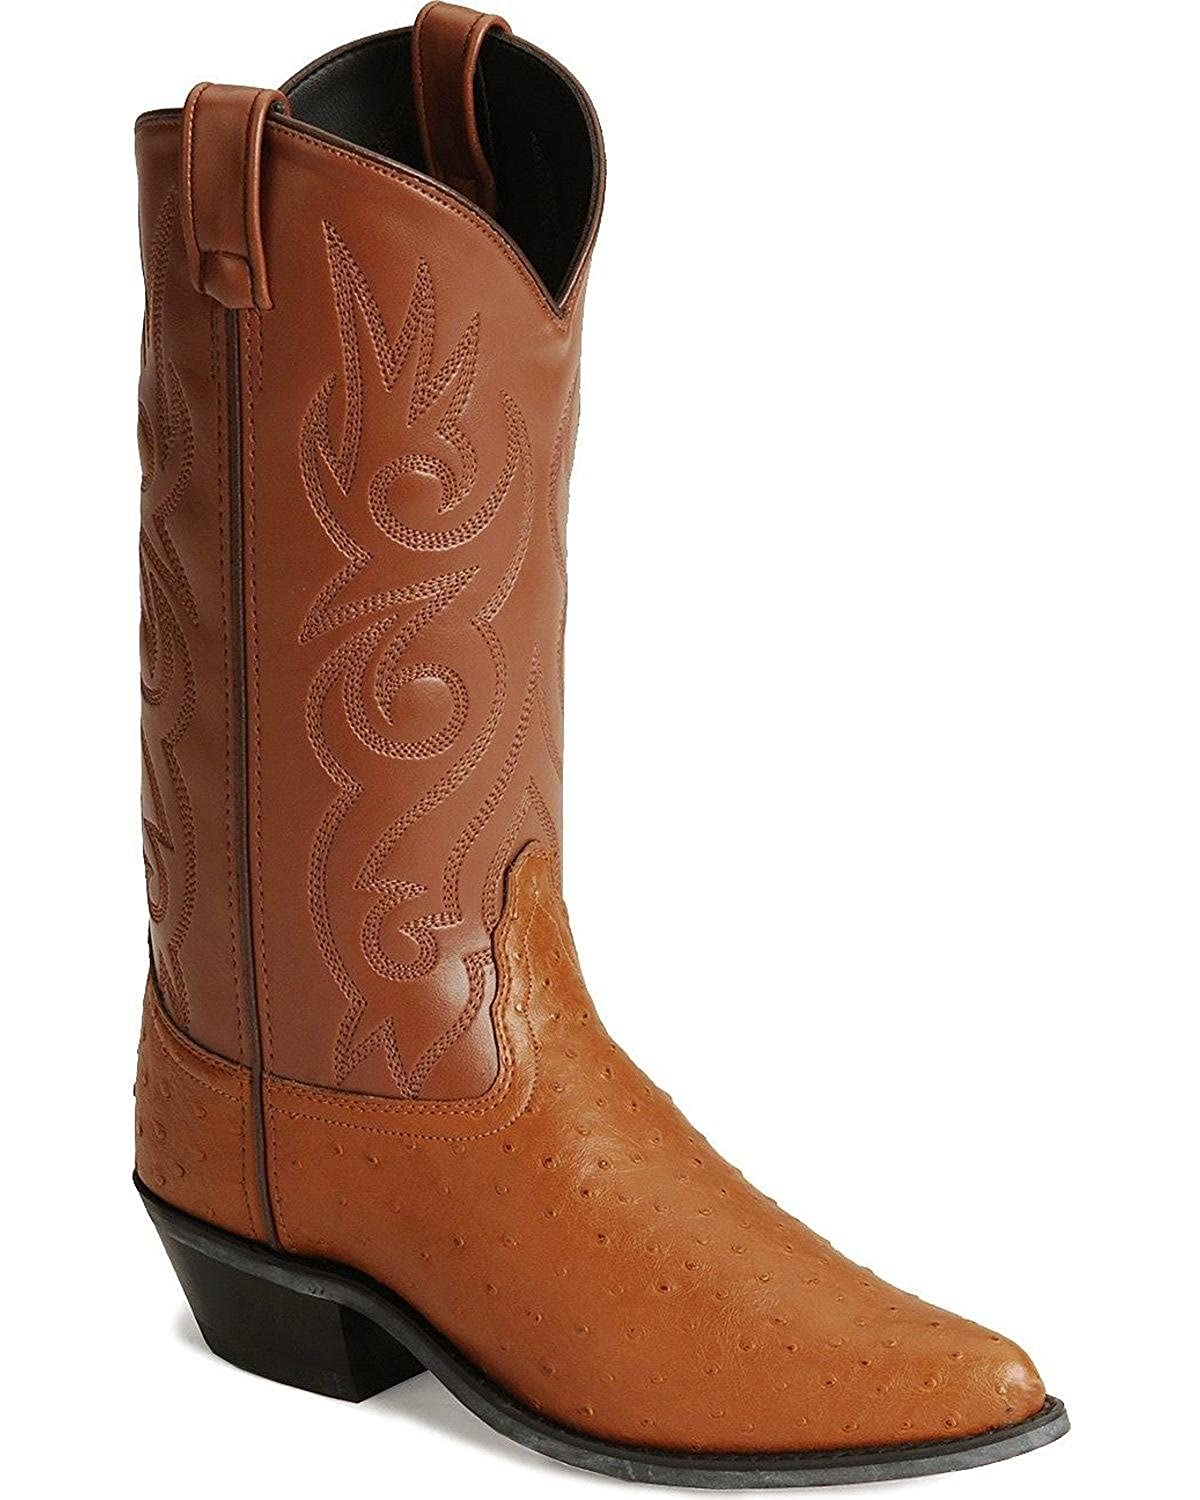 Old West Men's Fancy Stitched Ostrich Print Cowboy Boot Pointed Toe - Vcm9022